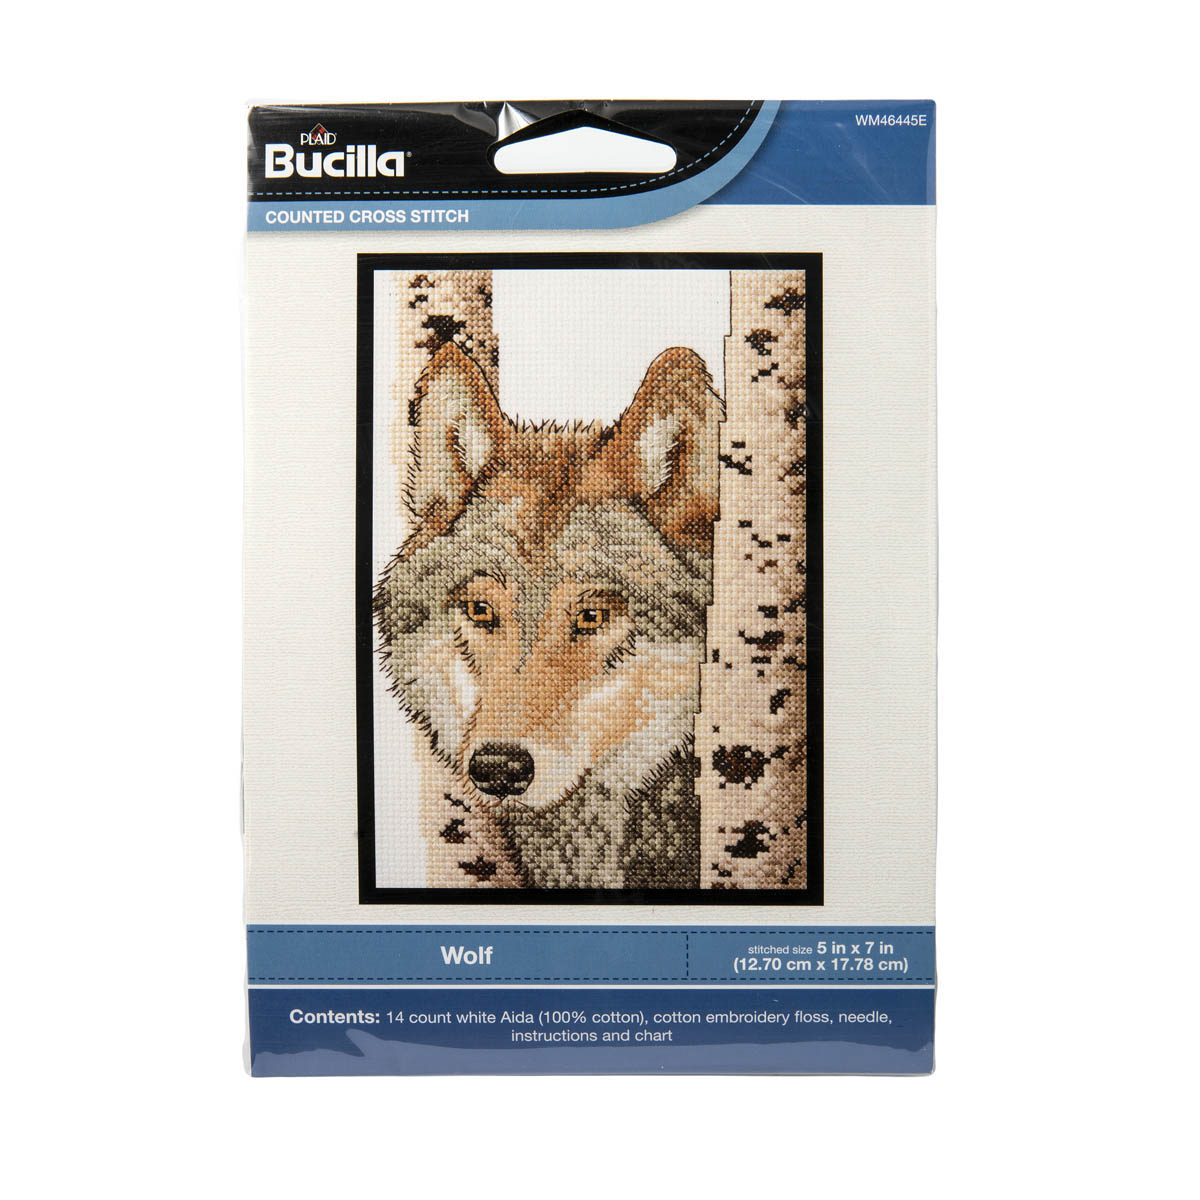 Bucilla ® Counted Cross Stitch - Picture Kits - Mini - Wolf